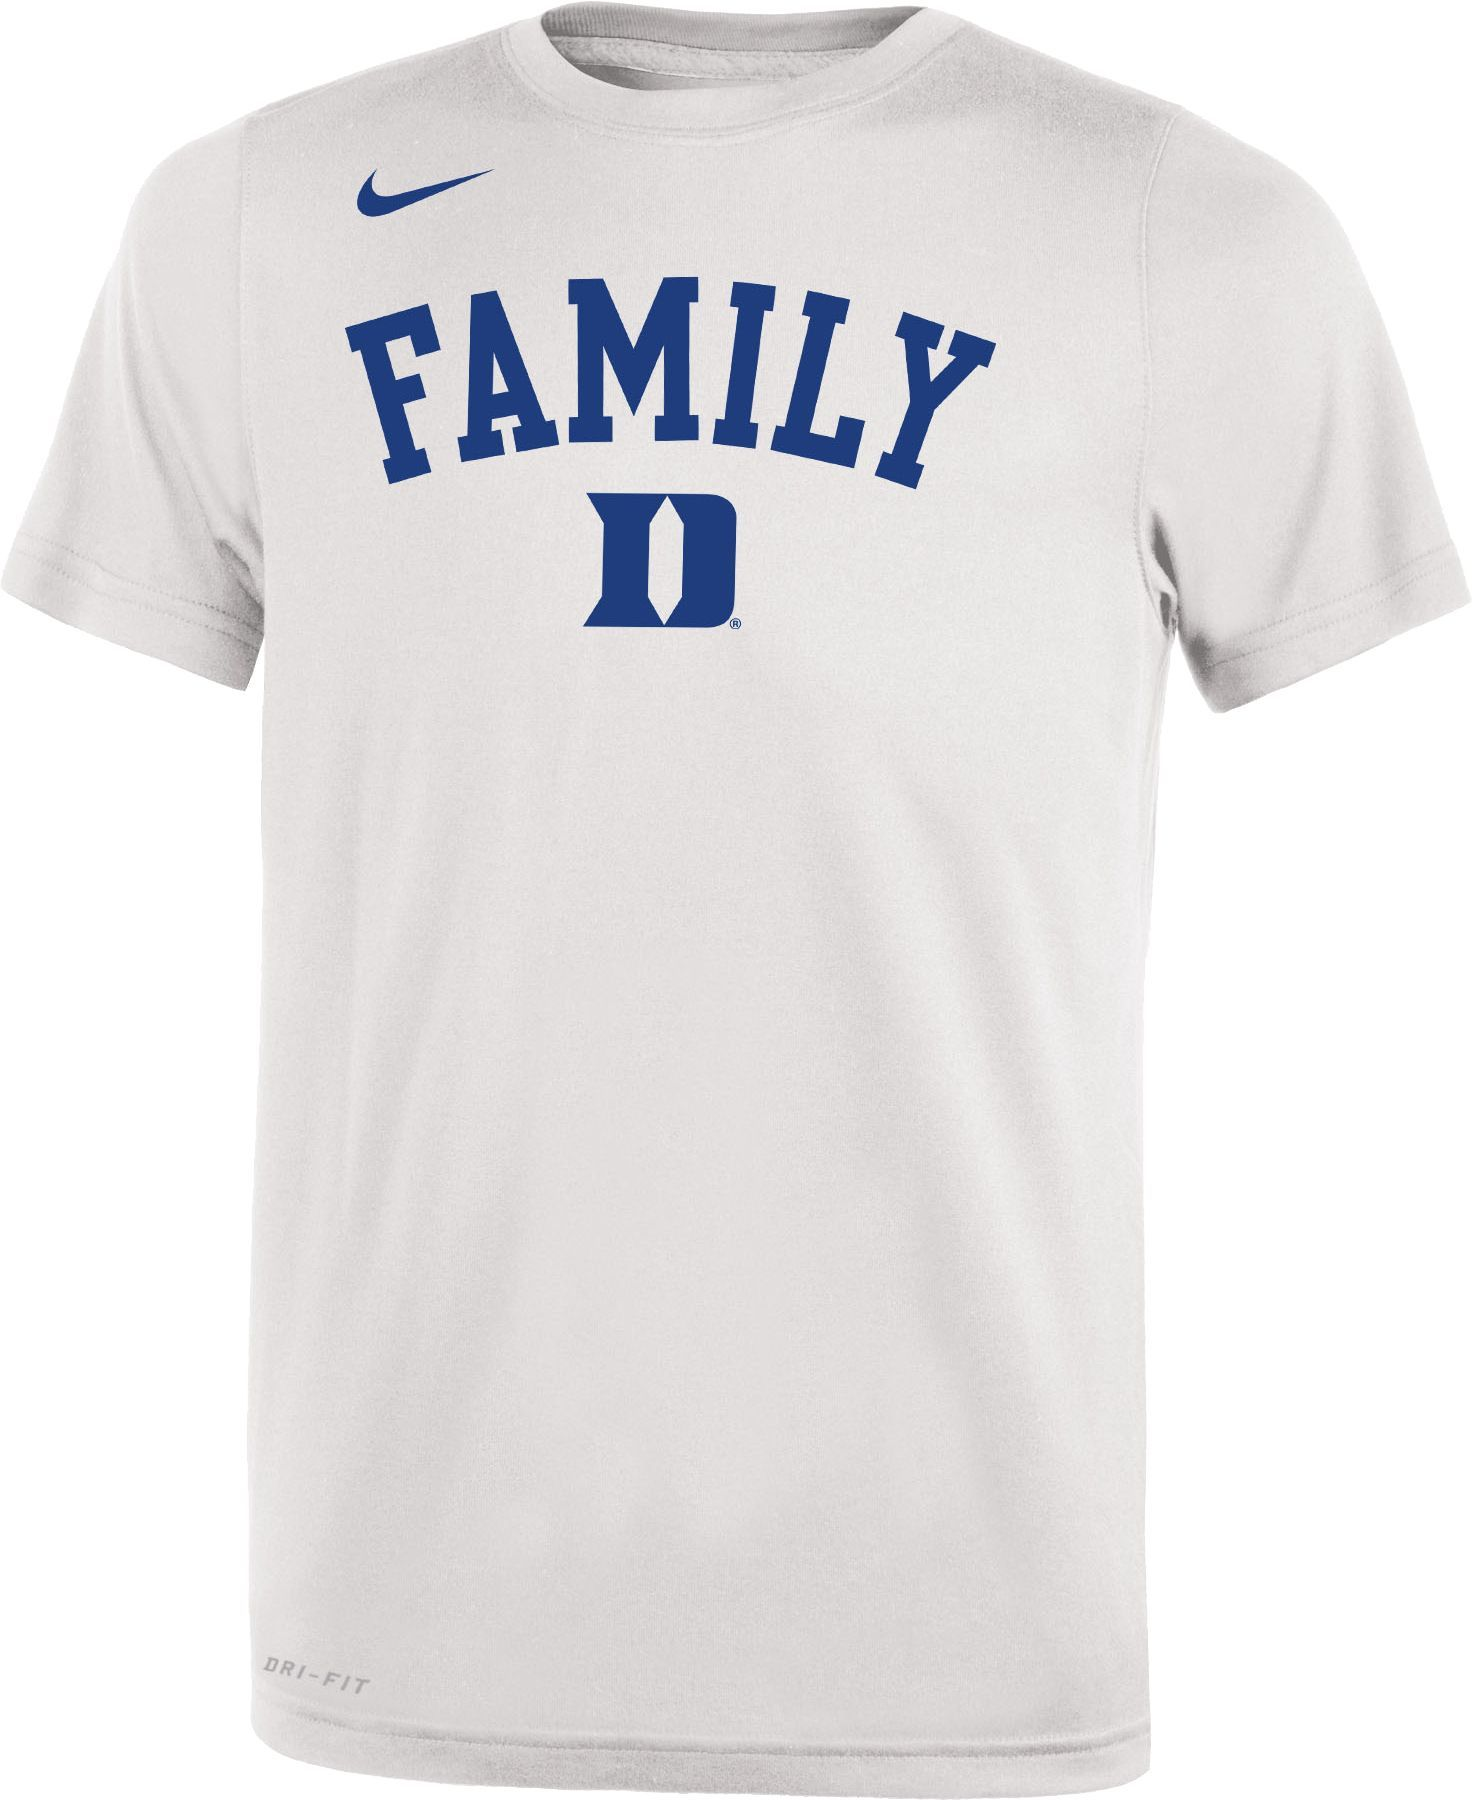 4c126829a Nike Youth Duke Blue Devils 'Family' Bench White T-Shirt in 2019 ...